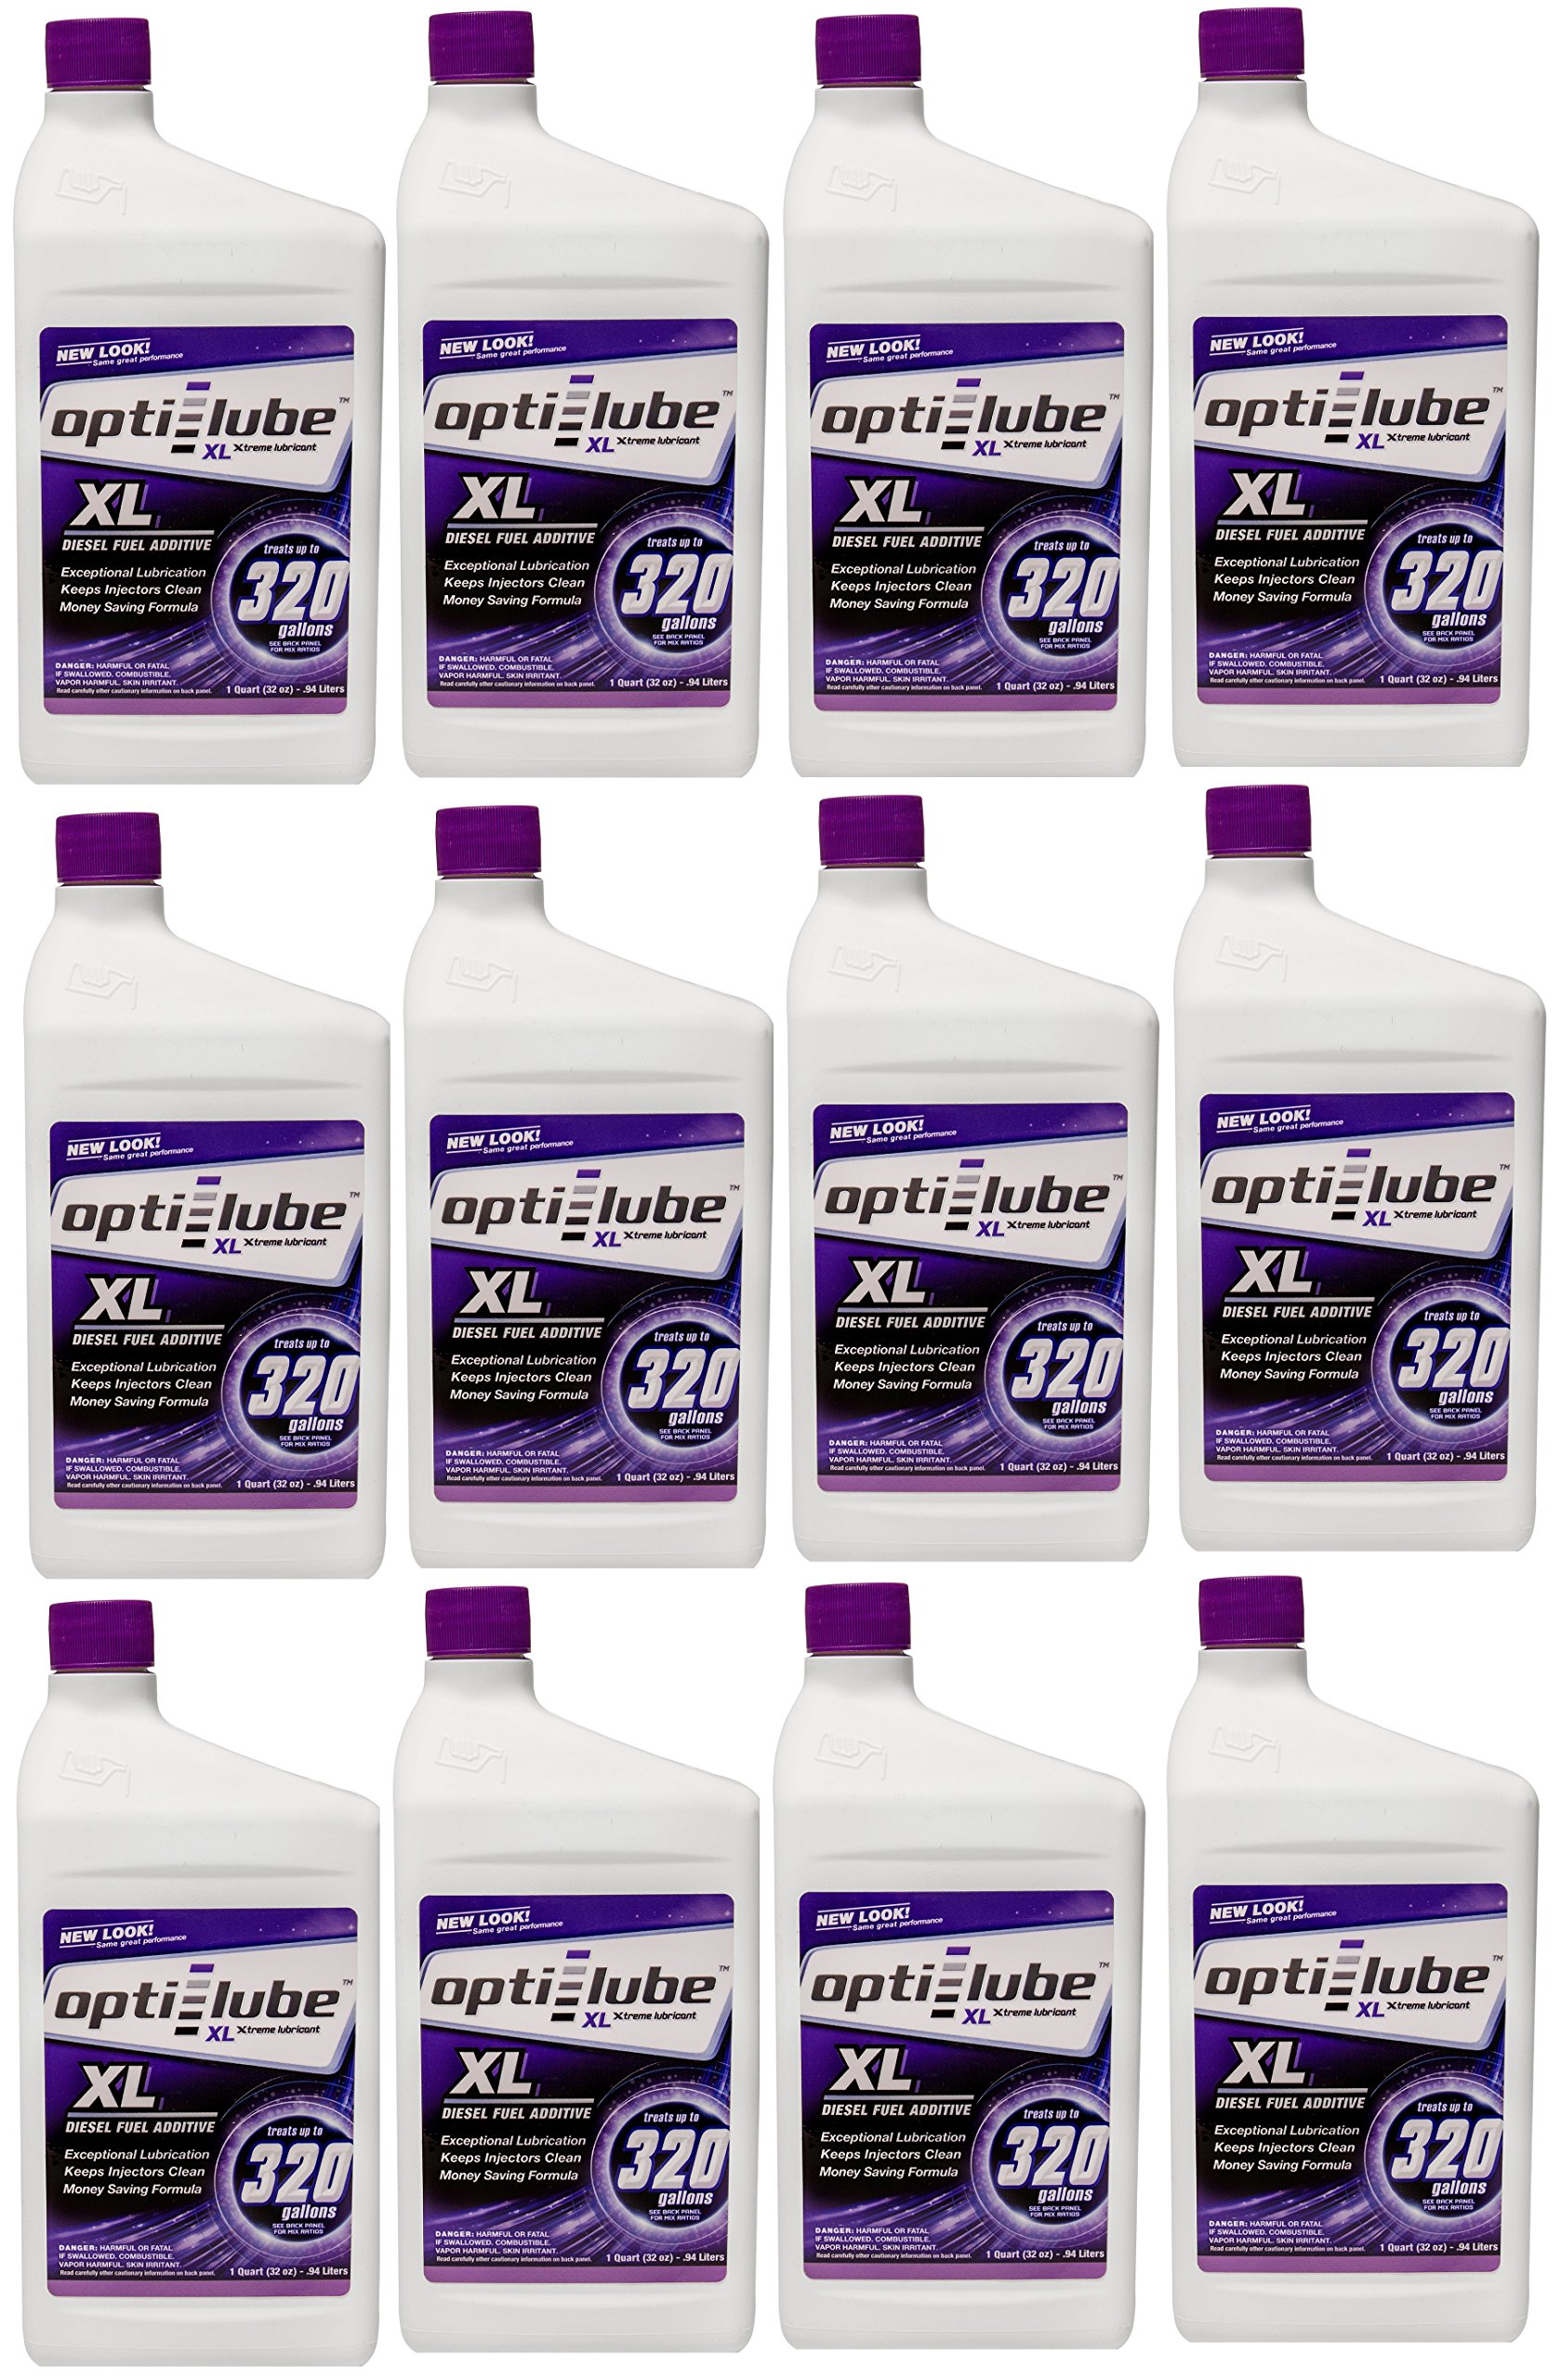 Opti-Lube XL Formula Diesel Fuel Additive: Quart, Case of 12. Each Quart Treats up to 320 Gallons of Diesel Fuel. by Opti-Lube